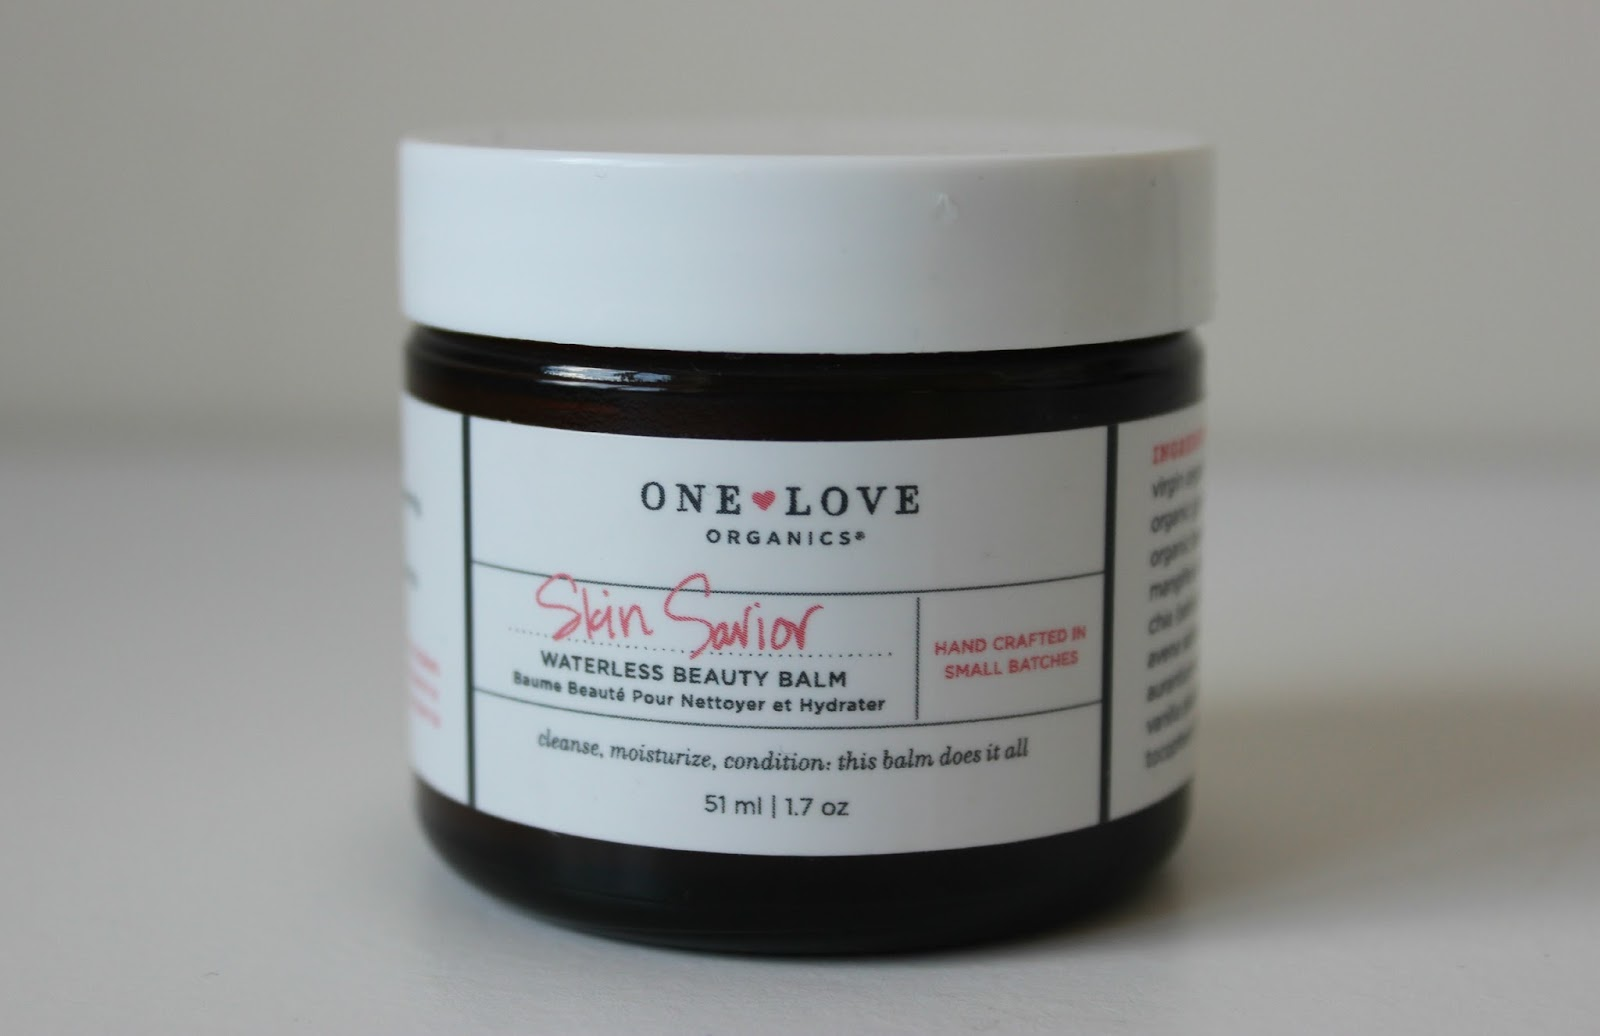 A picture of the One Love Organics Skin Saviour Waterless Beauty Balm